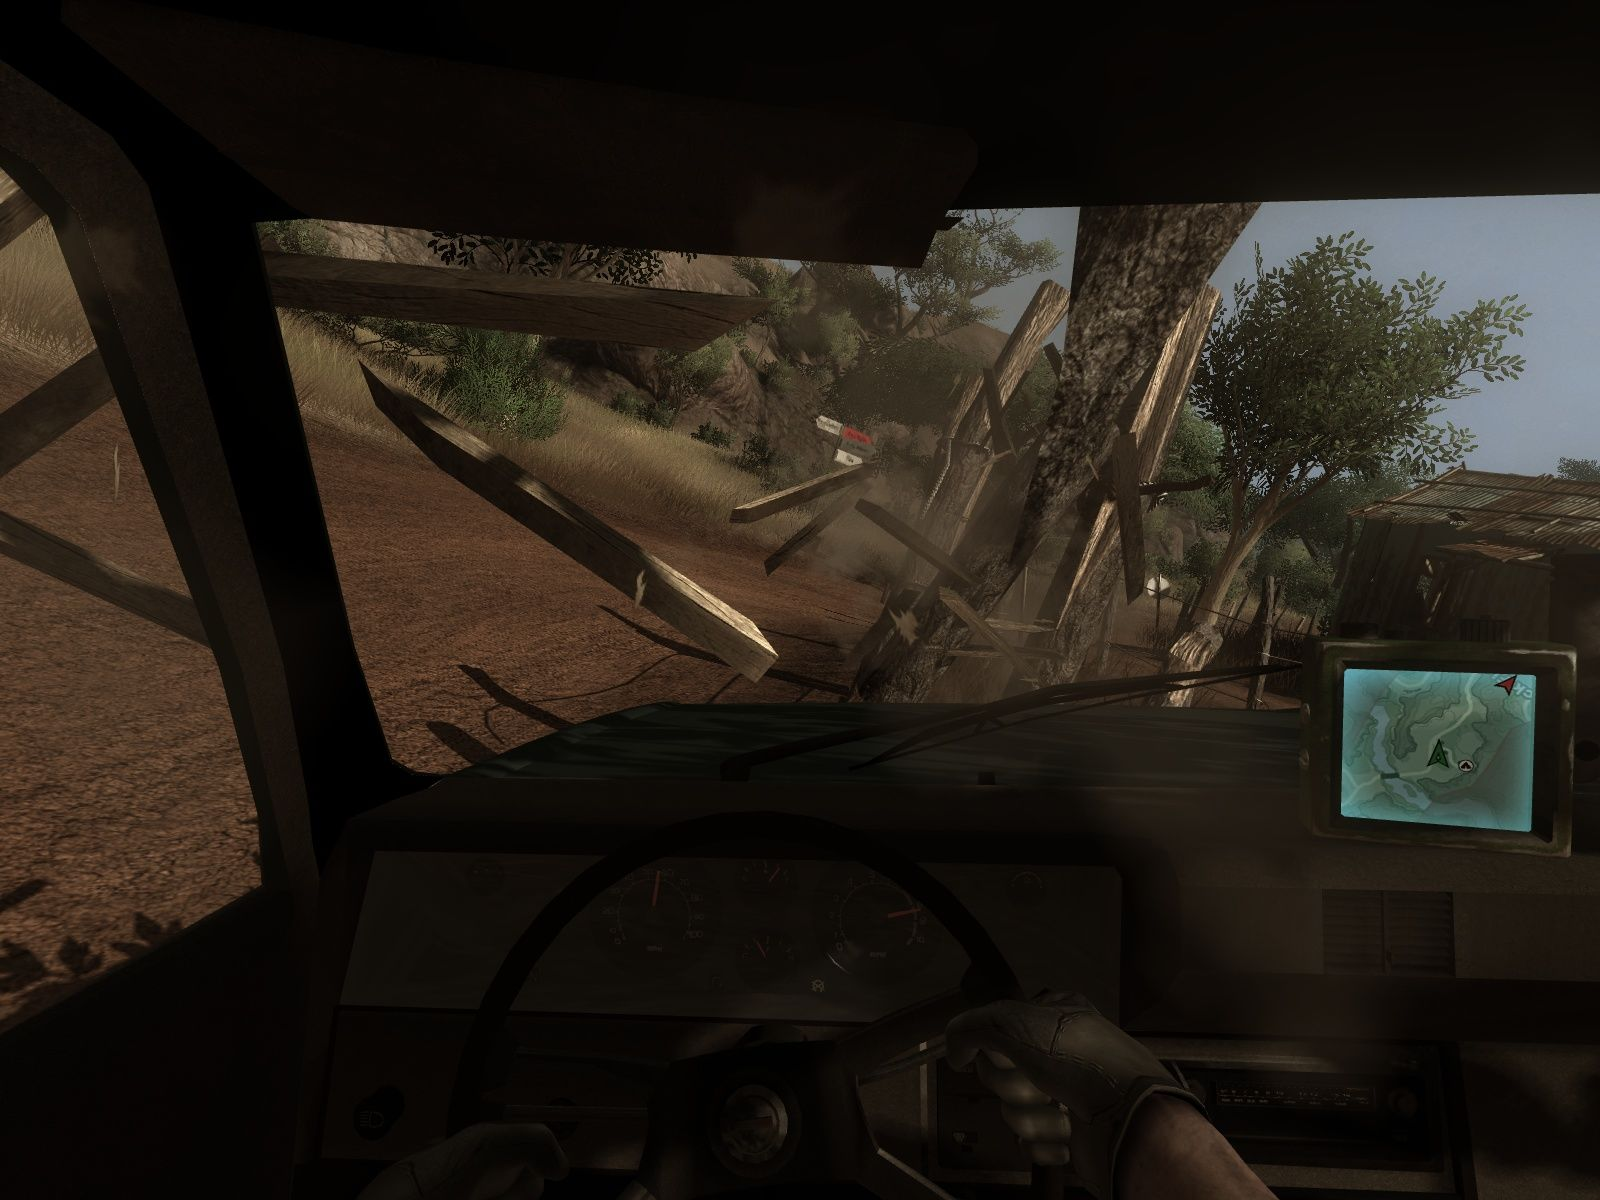 Far Cry 2 Windows Some reckless driving - fun times!